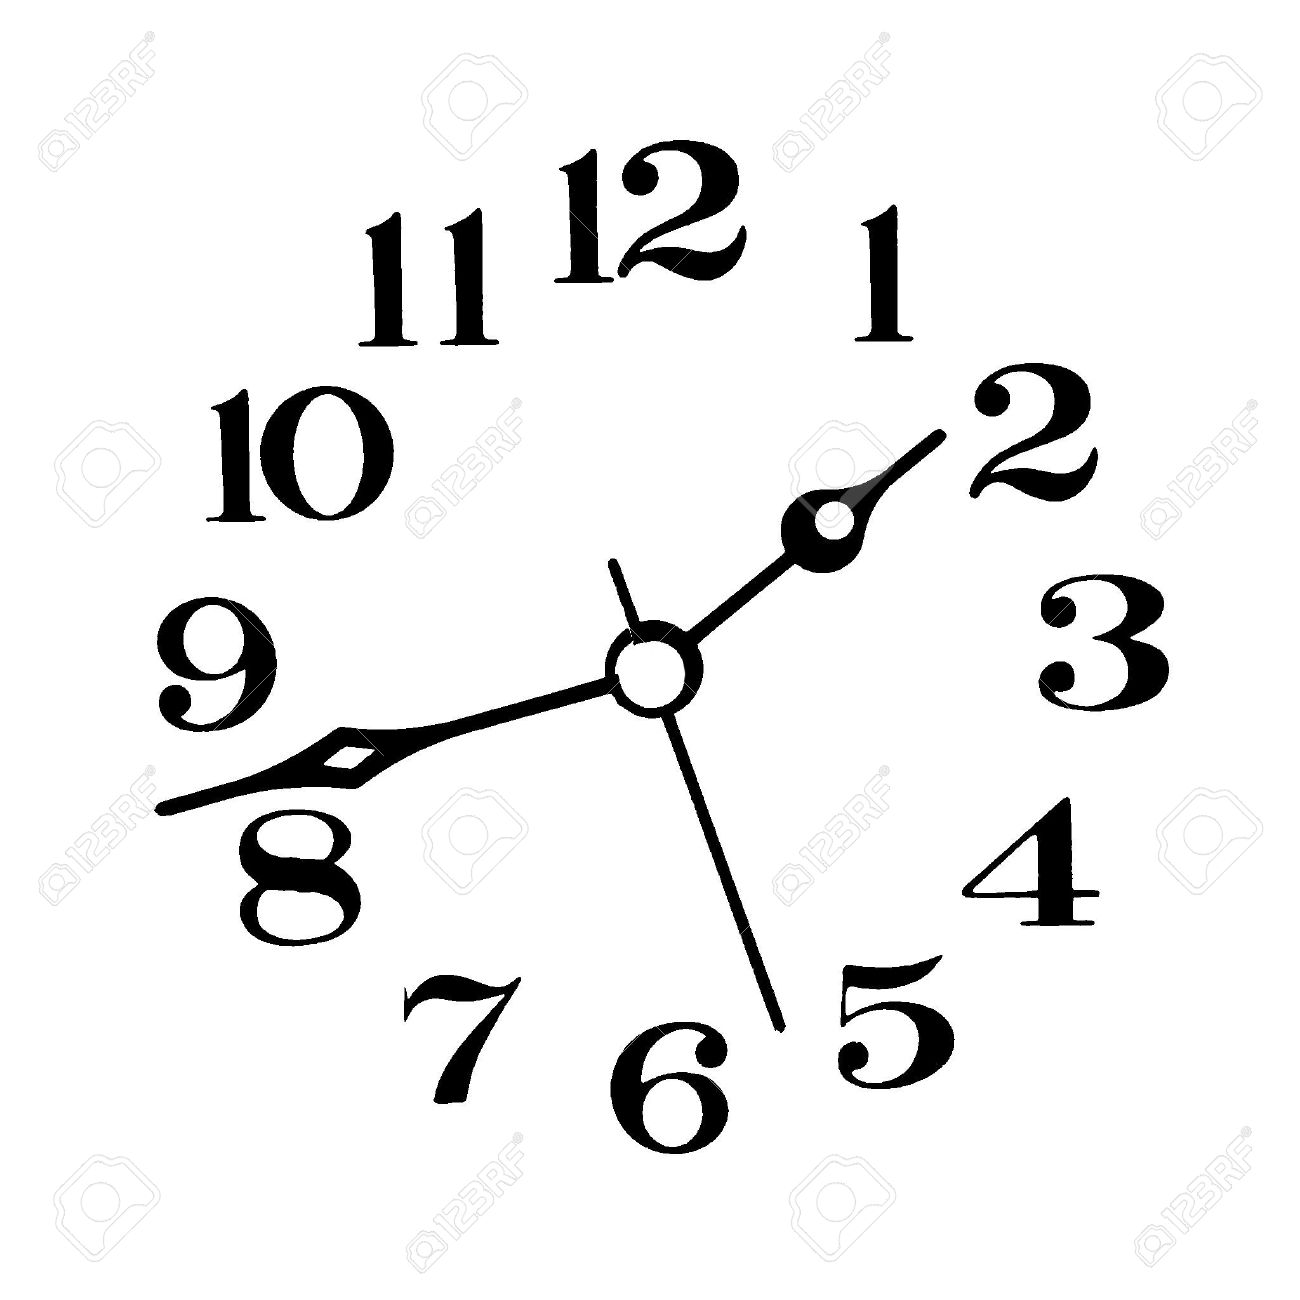 worksheet Clock Face With Hands clock face and hands black on white background stock photo 915303